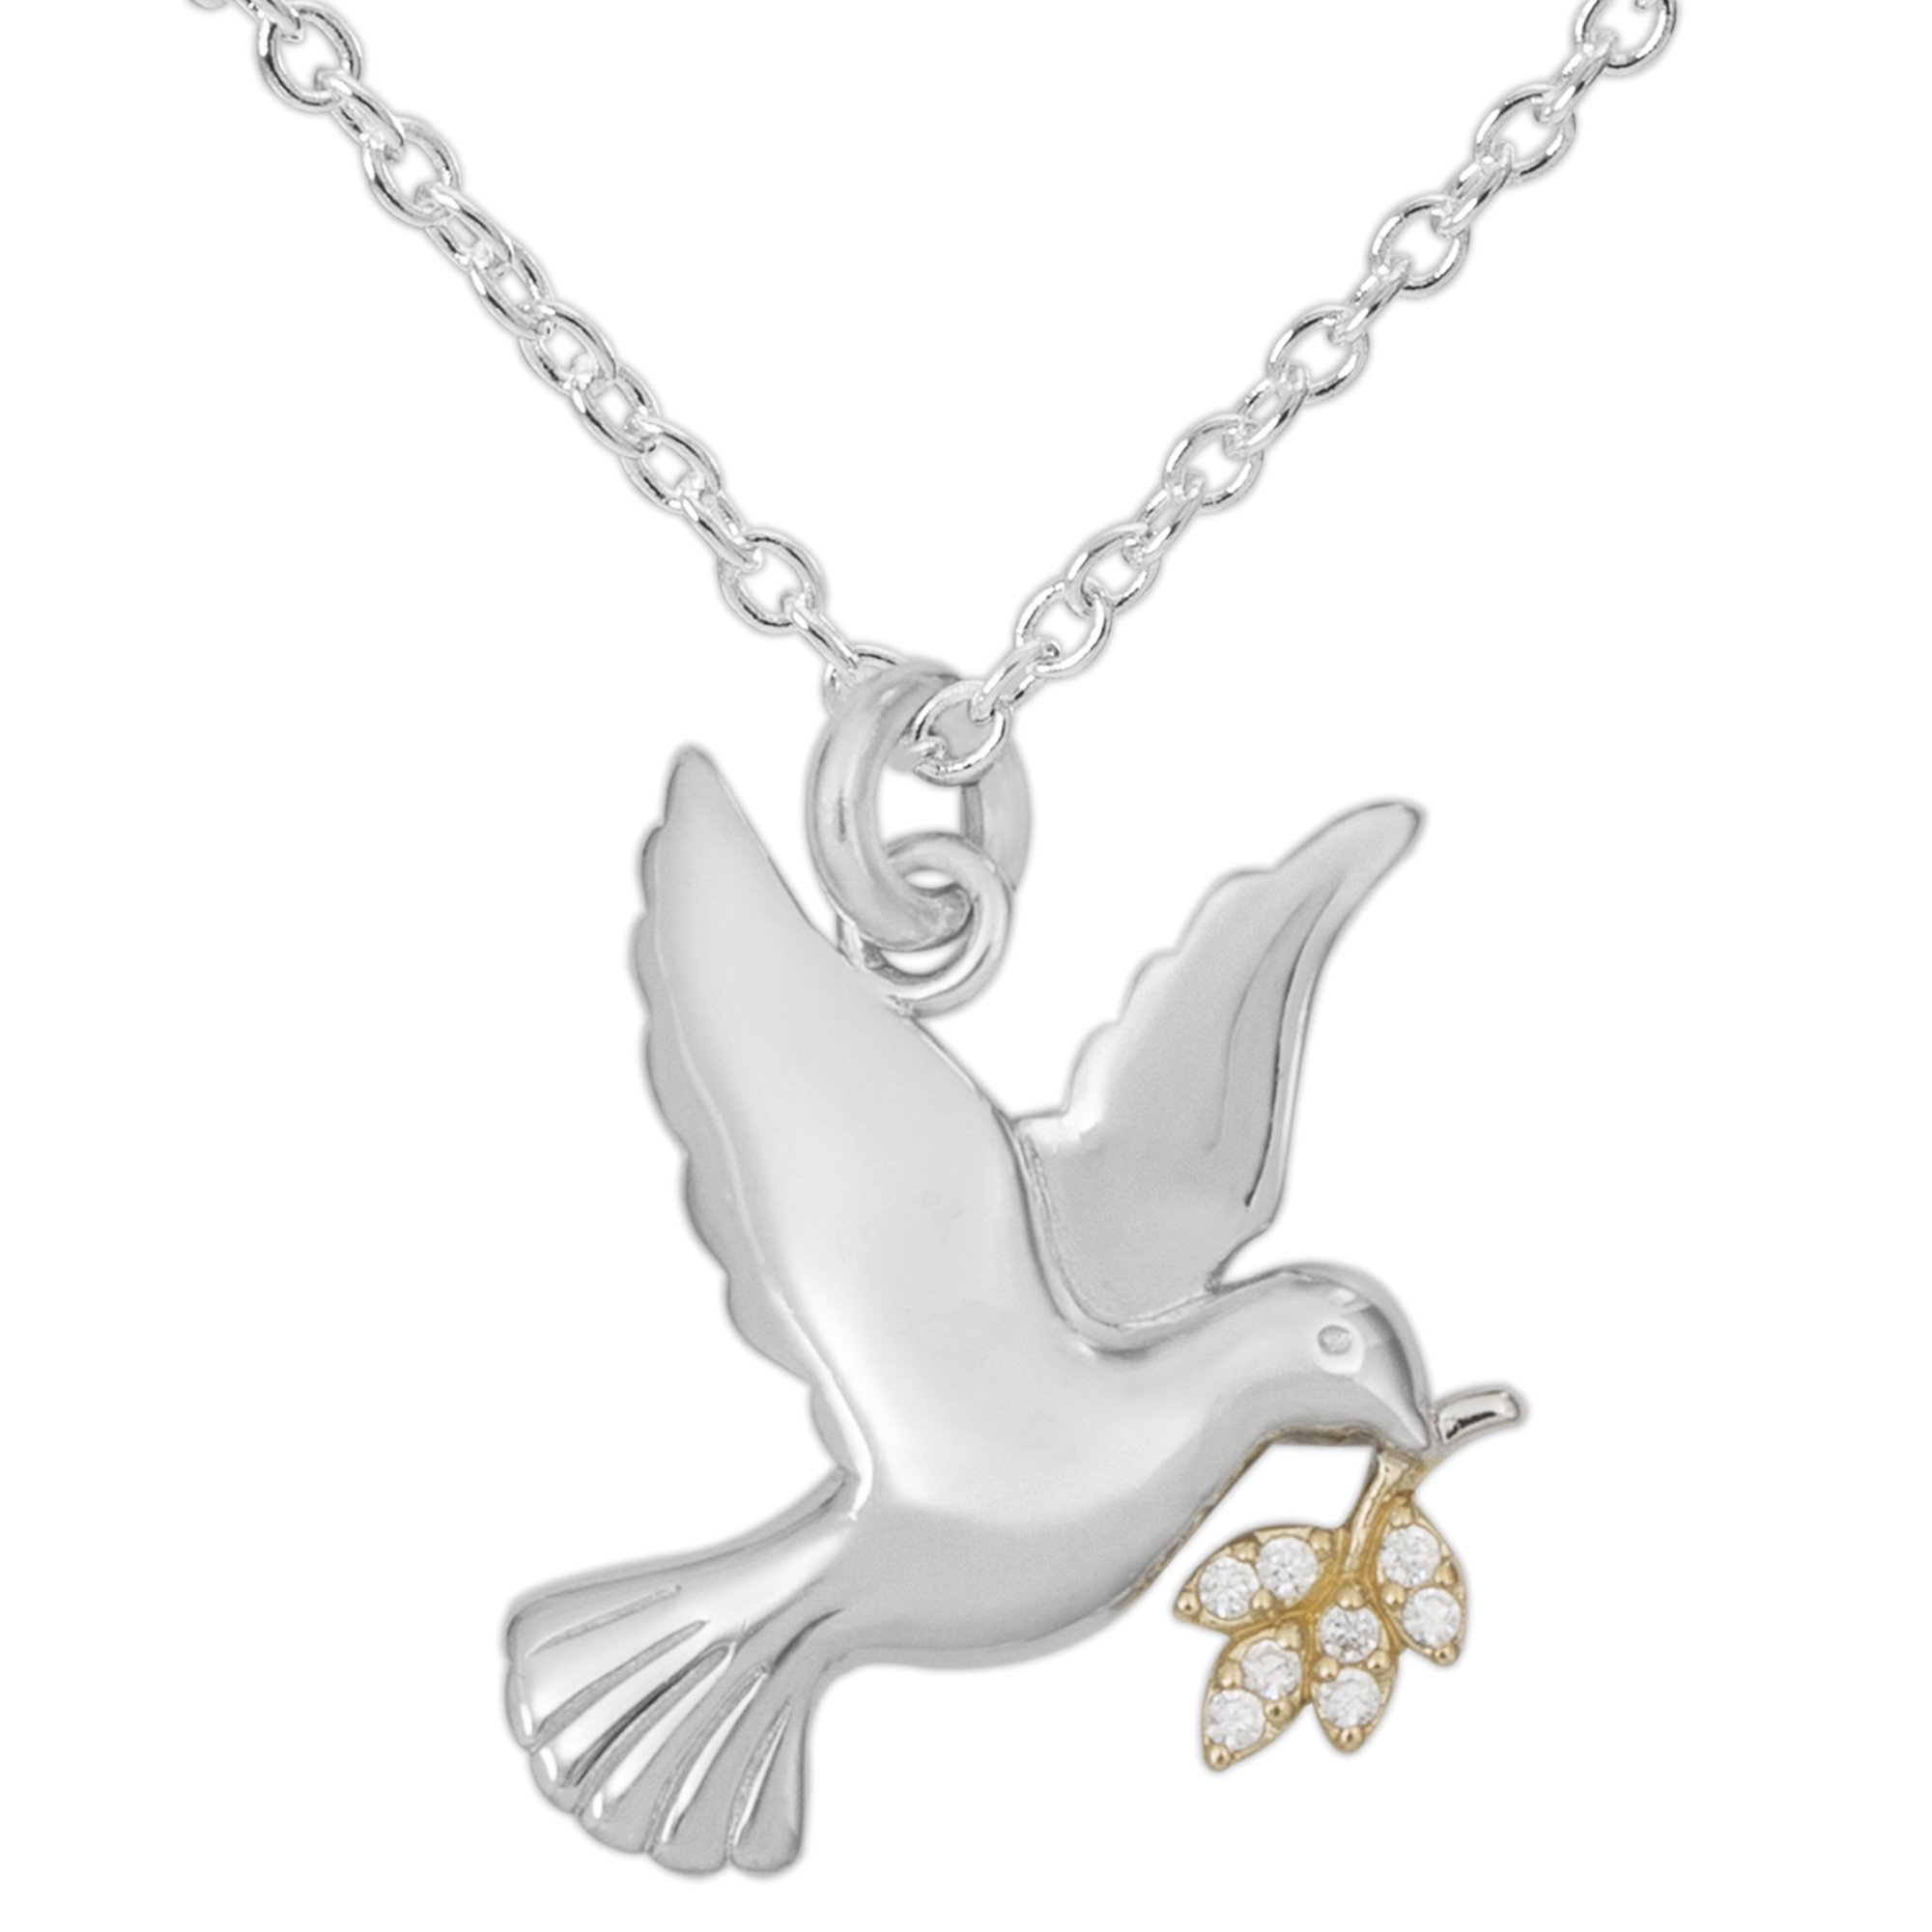 Hallmark Jewelry Women's Sterling Silver Dove with Clear Cubic Zirconia Leaf Pendant Necklace, 18''